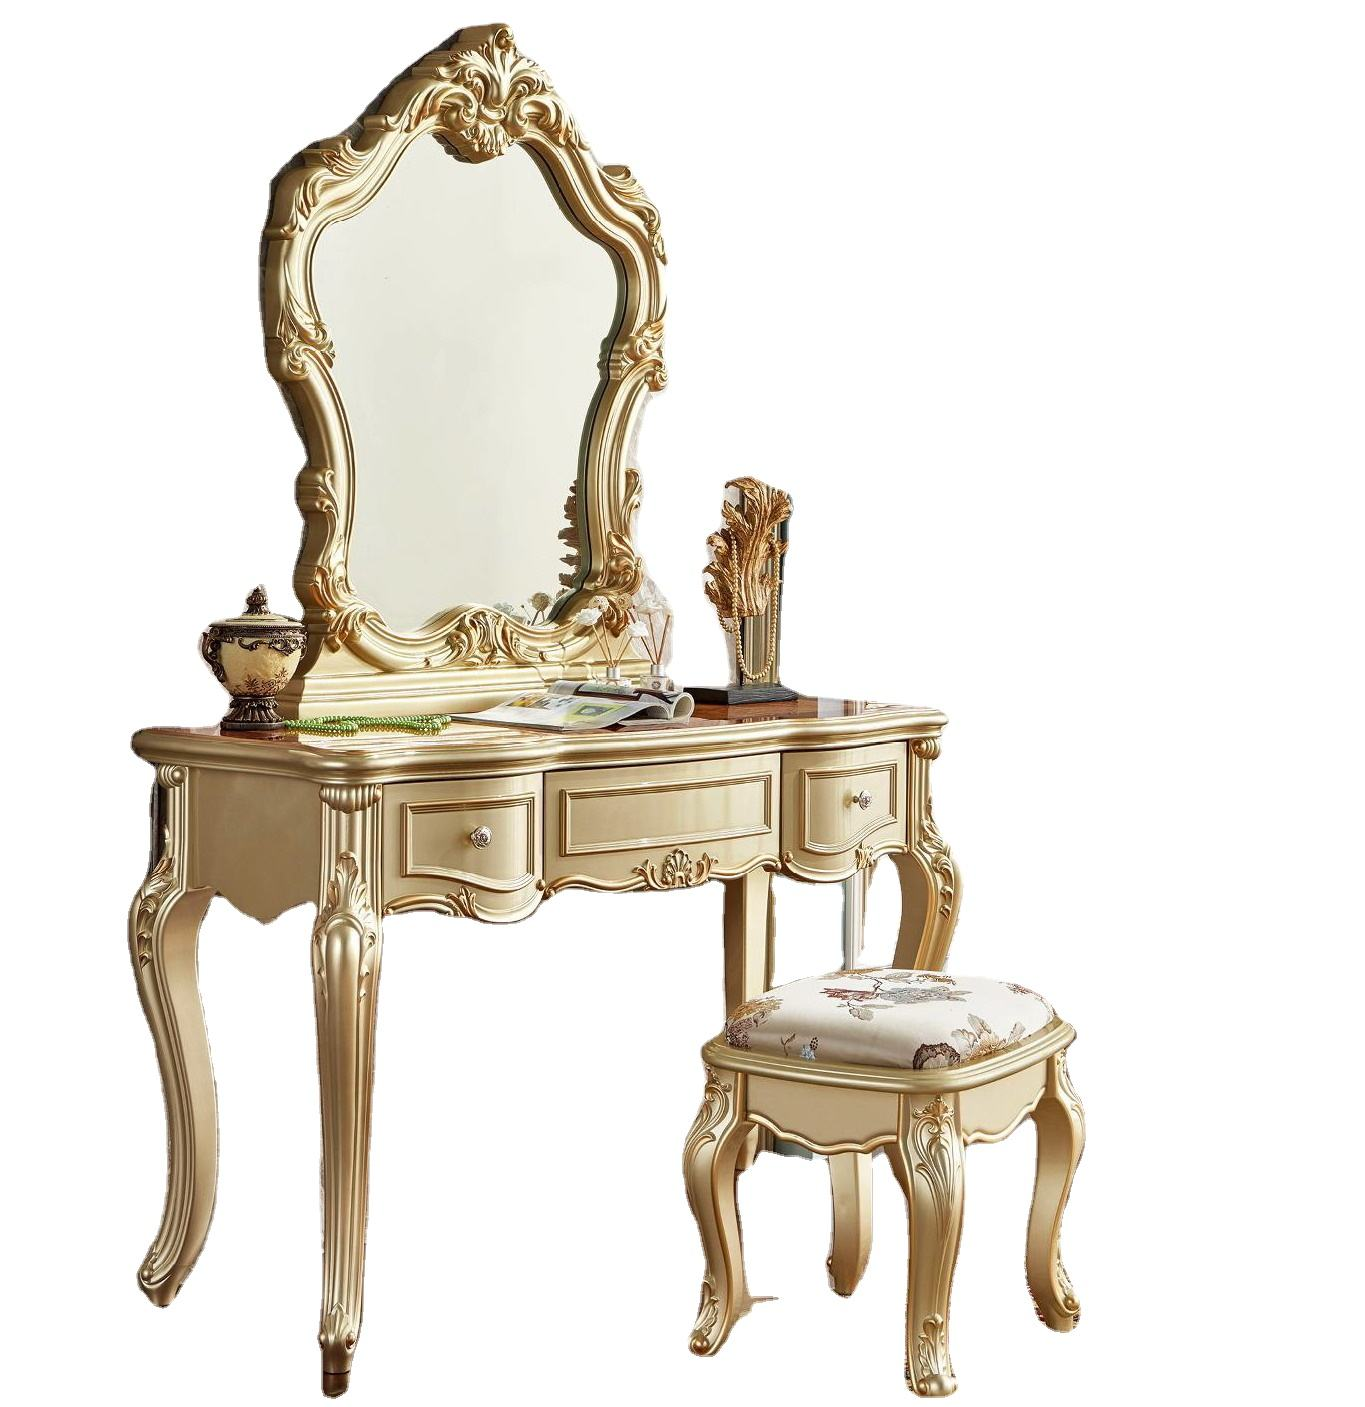 Luxury Golden European style classical wooden bedroom dressing table European antique make up table